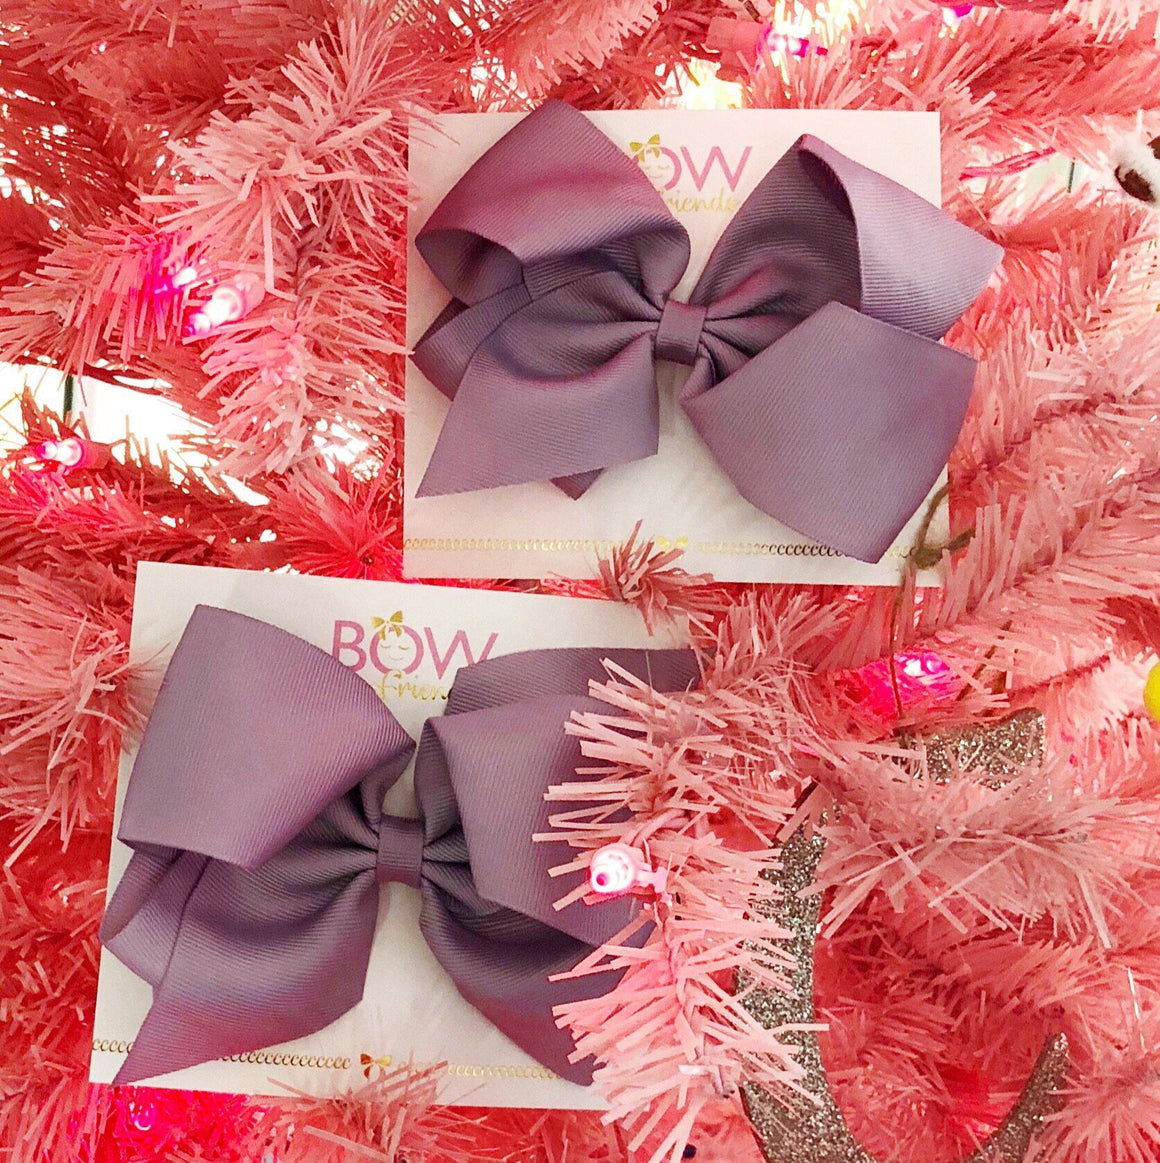 BOW FRIENDS - HAIR BOWS LARGE, ACCESSORIES, We love you Connie - Bon + Co. Party Studio